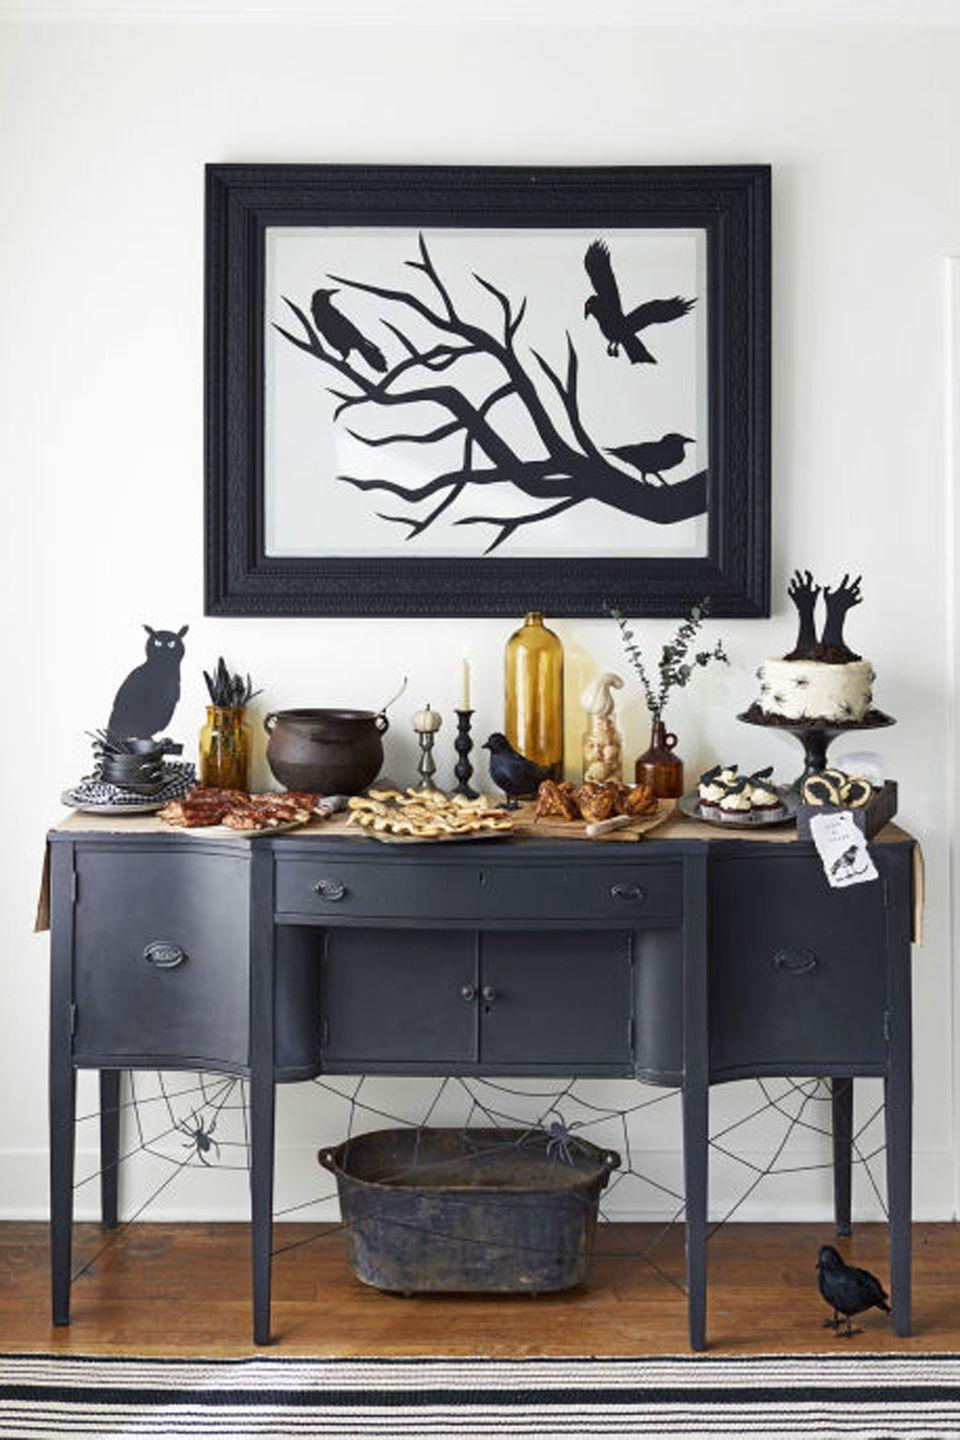 "<p>If you want to host a party that's chilling but not too scary, just throw some shade! This shadow-themed get-together has spooky silhouette cutouts of everything, from birds and bats to witches and candelabras.</p><p><strong>Find even more <a href=""https://www.countryliving.com/entertaining/g271/halloween-decorating-1005/"" rel=""nofollow noopener"" target=""_blank"" data-ylk=""slk:Halloween party decor ideas"" class=""link rapid-noclick-resp"">Halloween party decor ideas</a>.</strong> </p><p><strong><a class=""link rapid-noclick-resp"" href=""https://www.amazon.com/3-Candle-Metal-Candelabra-Black/dp/B01LY0DBDA/?tag=syn-yahoo-20&ascsubtag=%5Bartid%7C10050.g.4620%5Bsrc%7Cyahoo-us"" rel=""nofollow noopener"" target=""_blank"" data-ylk=""slk:SHOP BLACK CANDELABRAS"">SHOP BLACK CANDELABRAS</a></strong></p>"